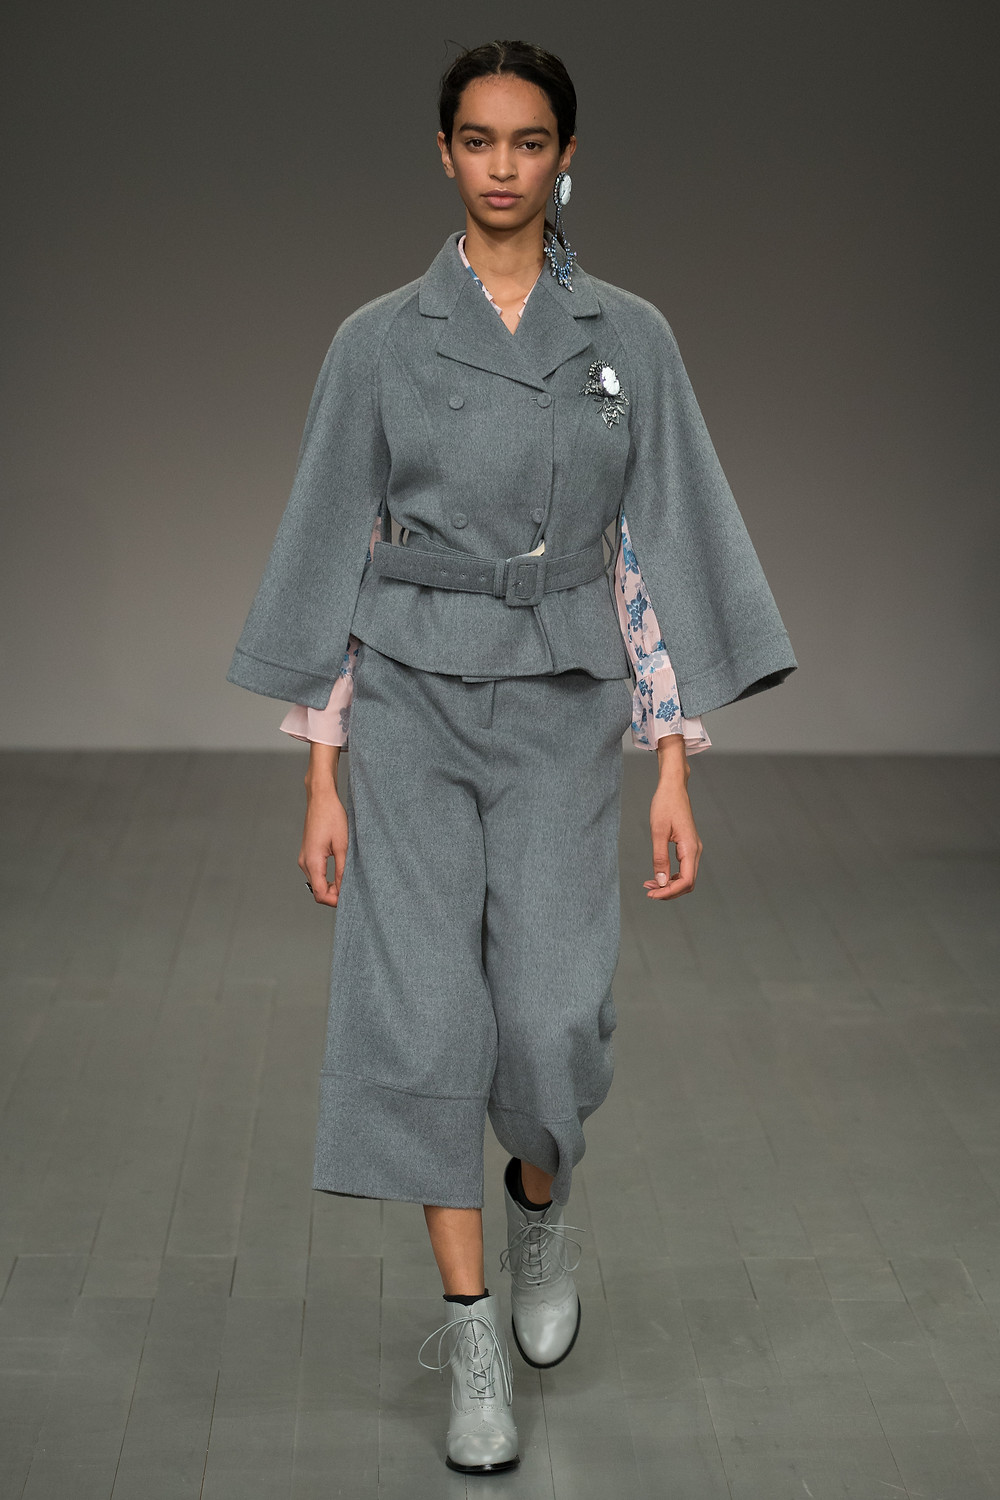 BORA AKSU's Autumn / Winter 2018 Collection